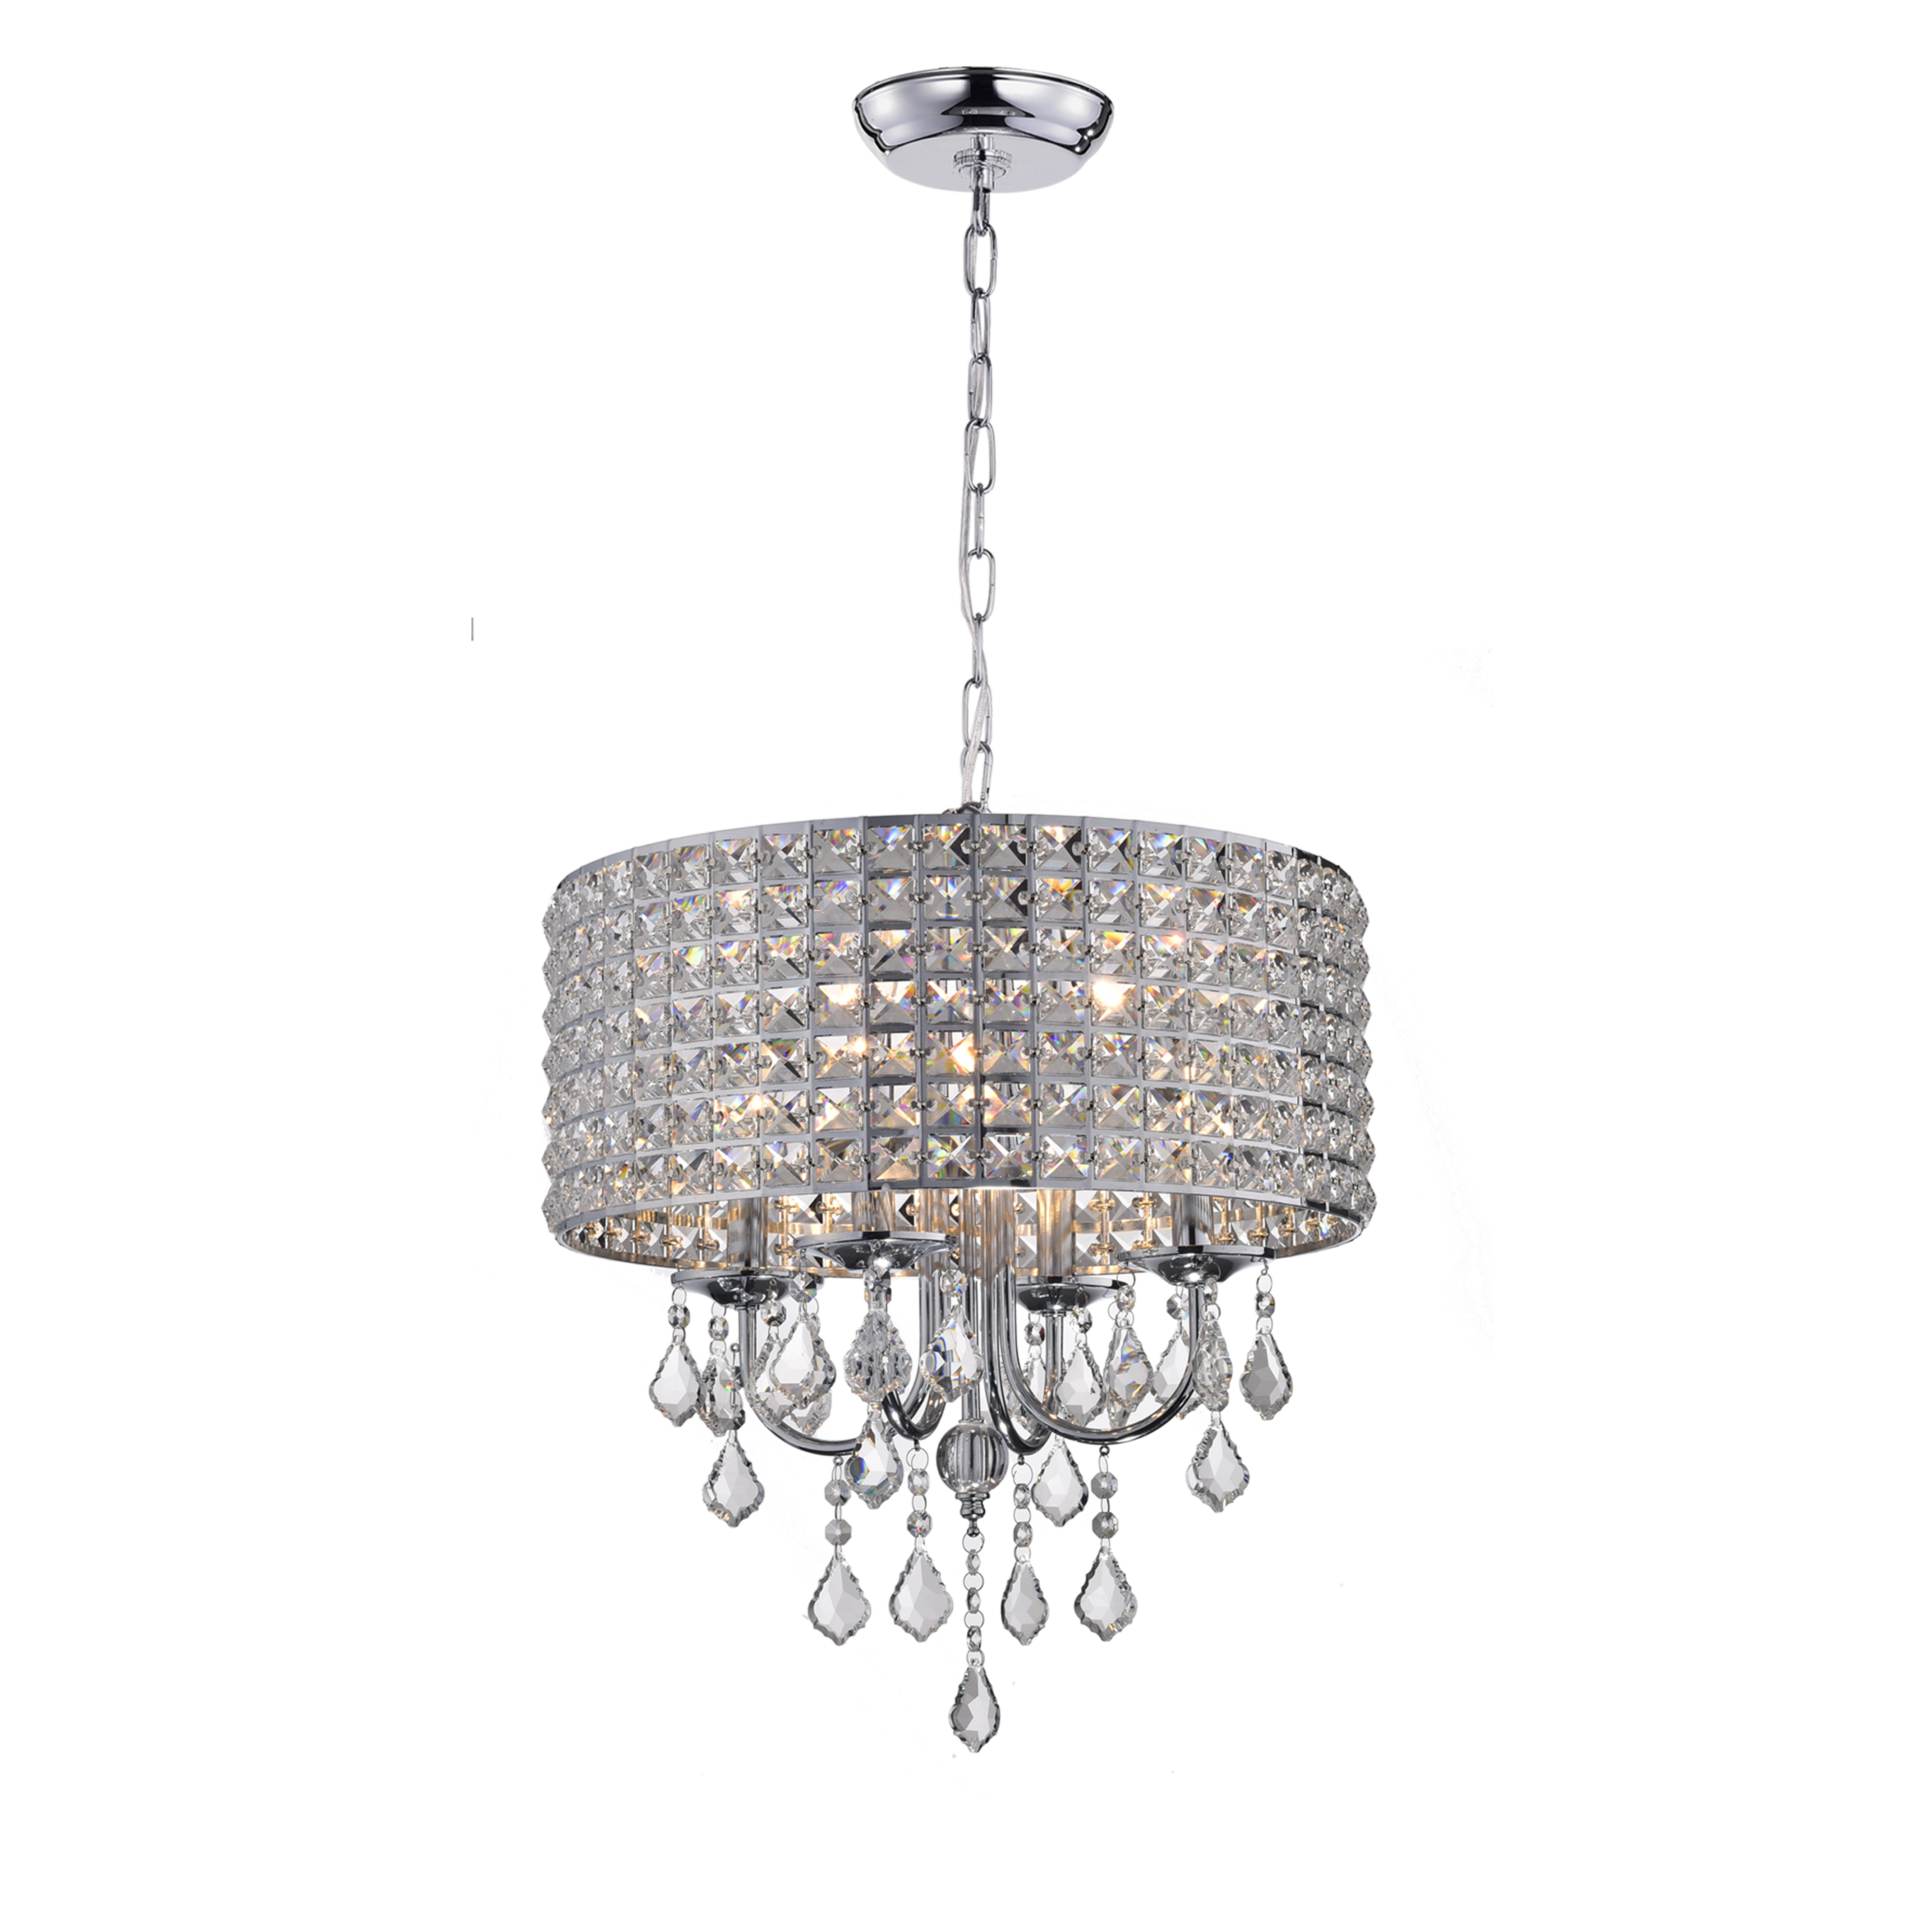 Albano 4 Light Crystal Chandelier With Regard To Famous Gisselle 4 Light Drum Chandeliers (View 16 of 25)